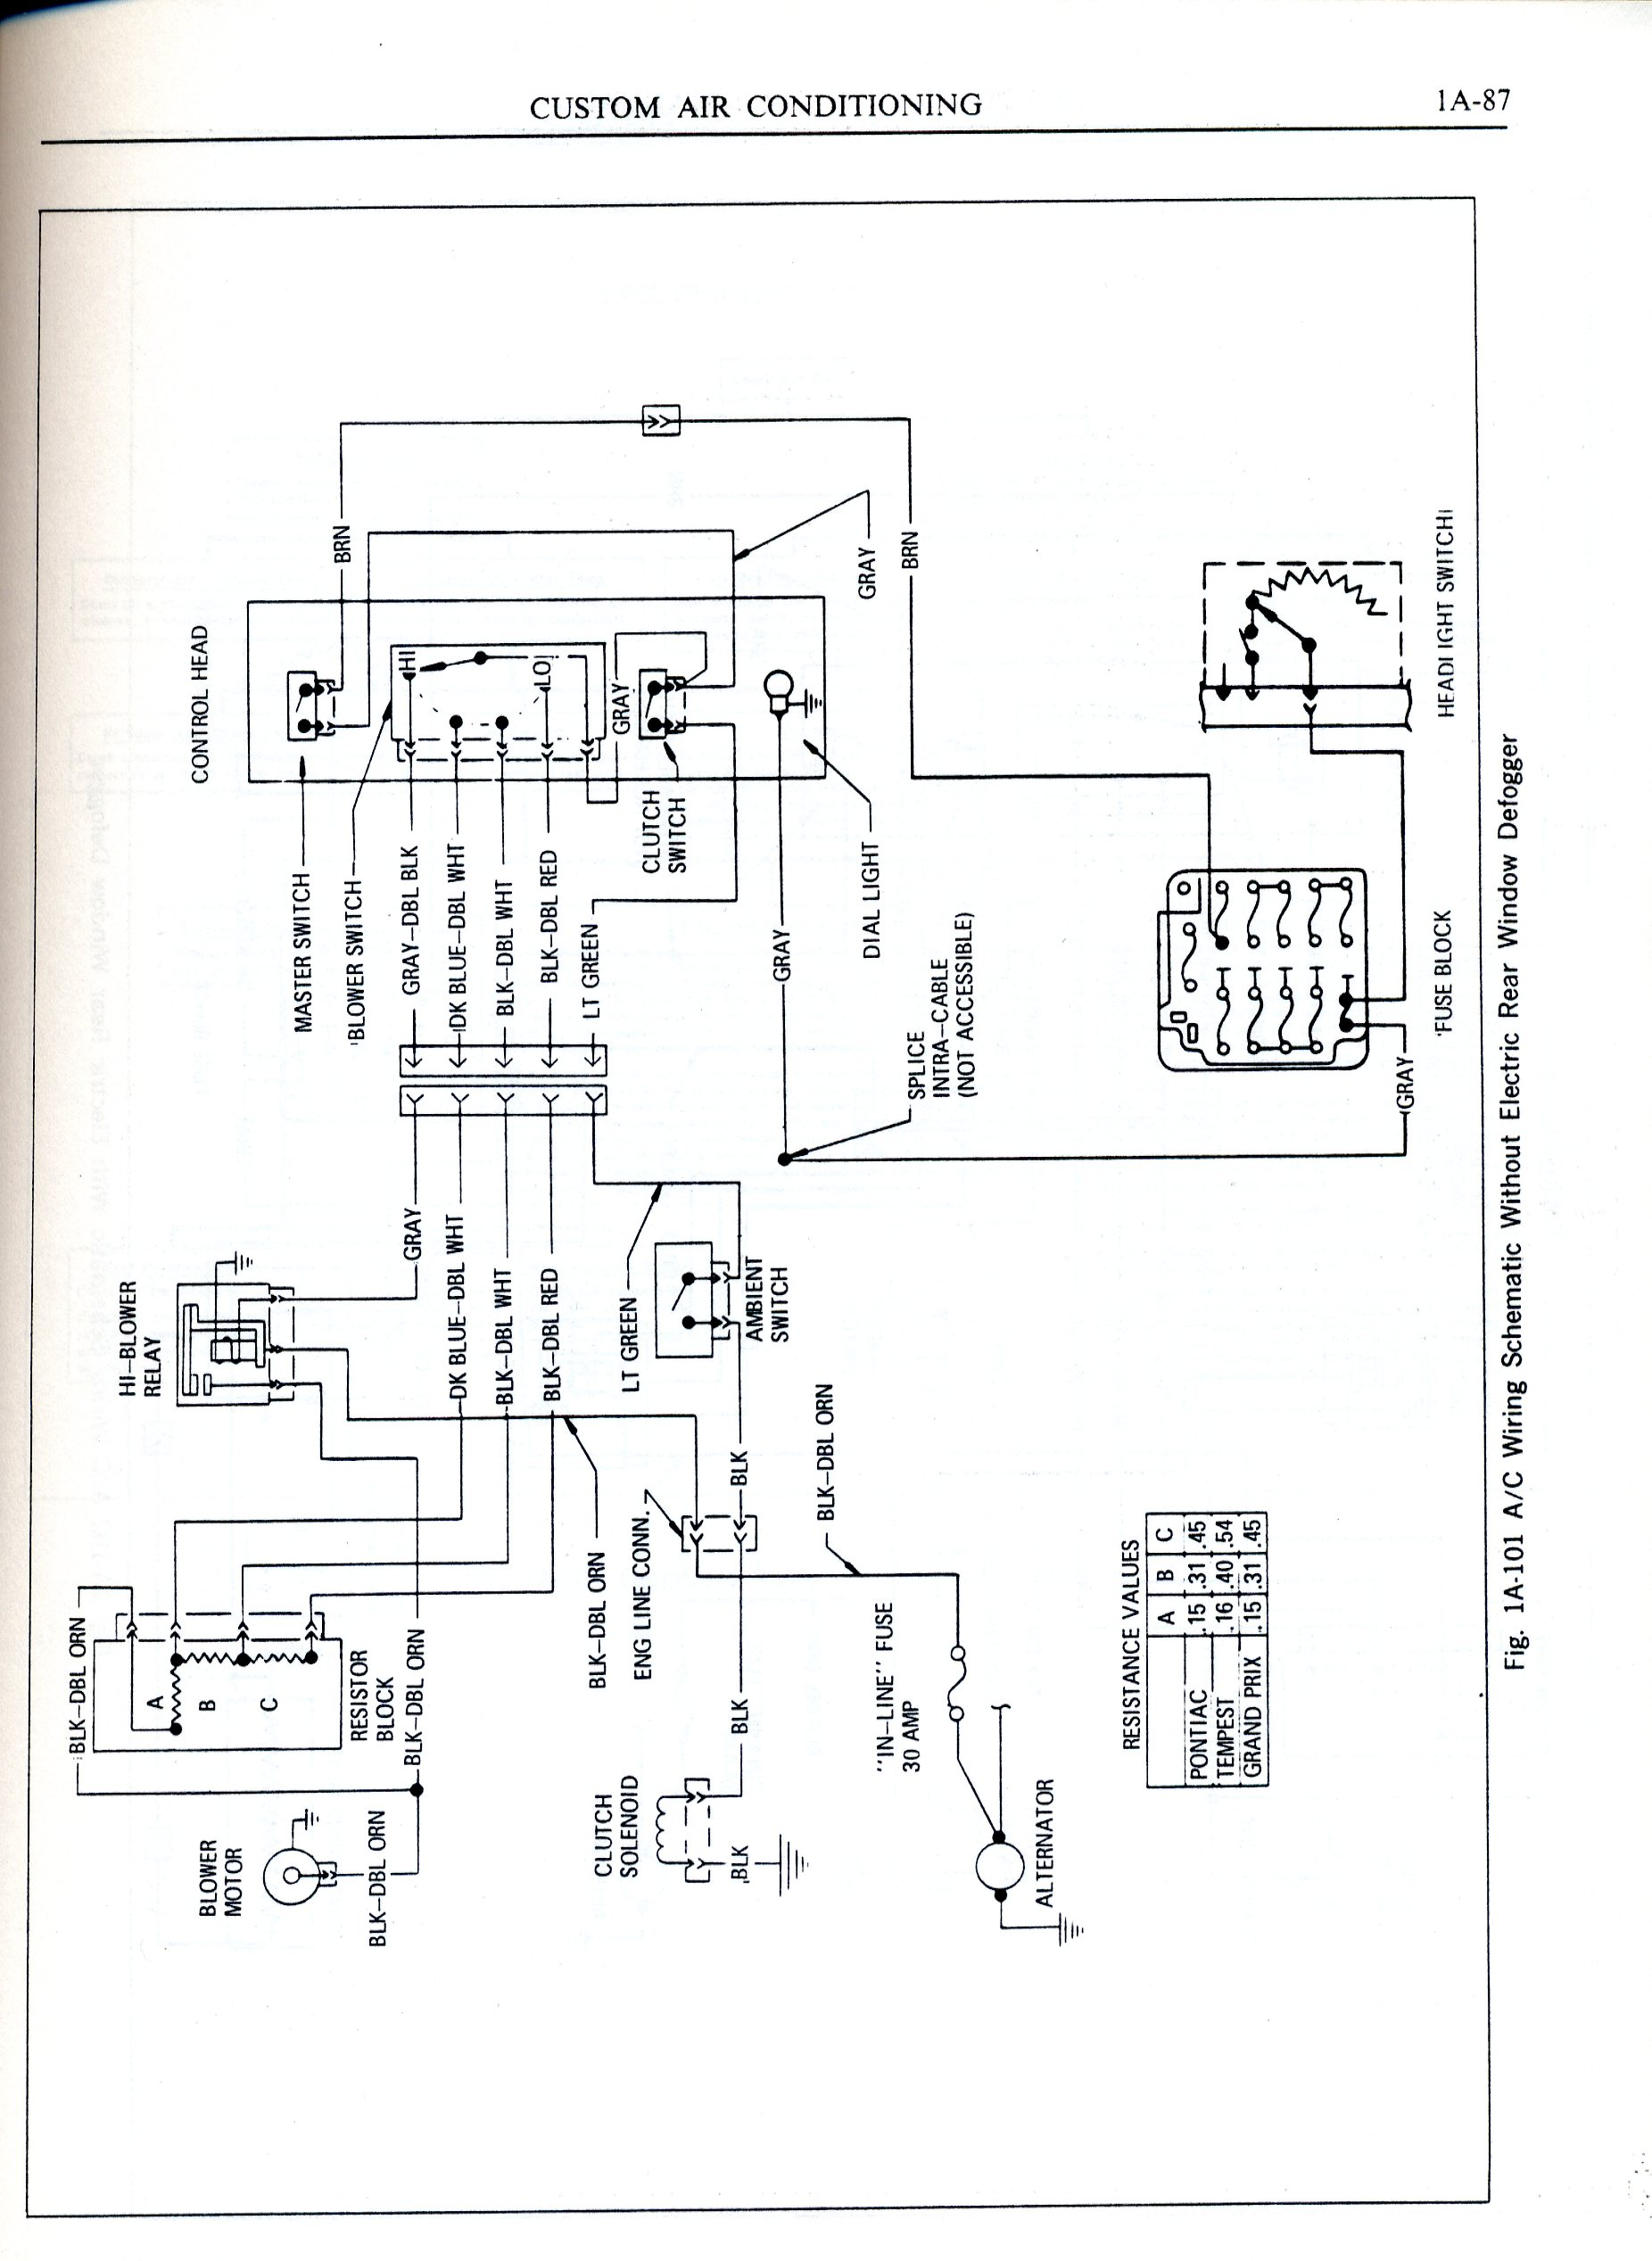 [DIAGRAM] 1968 Pontiac Gto Dash Wiring Diagram FULL